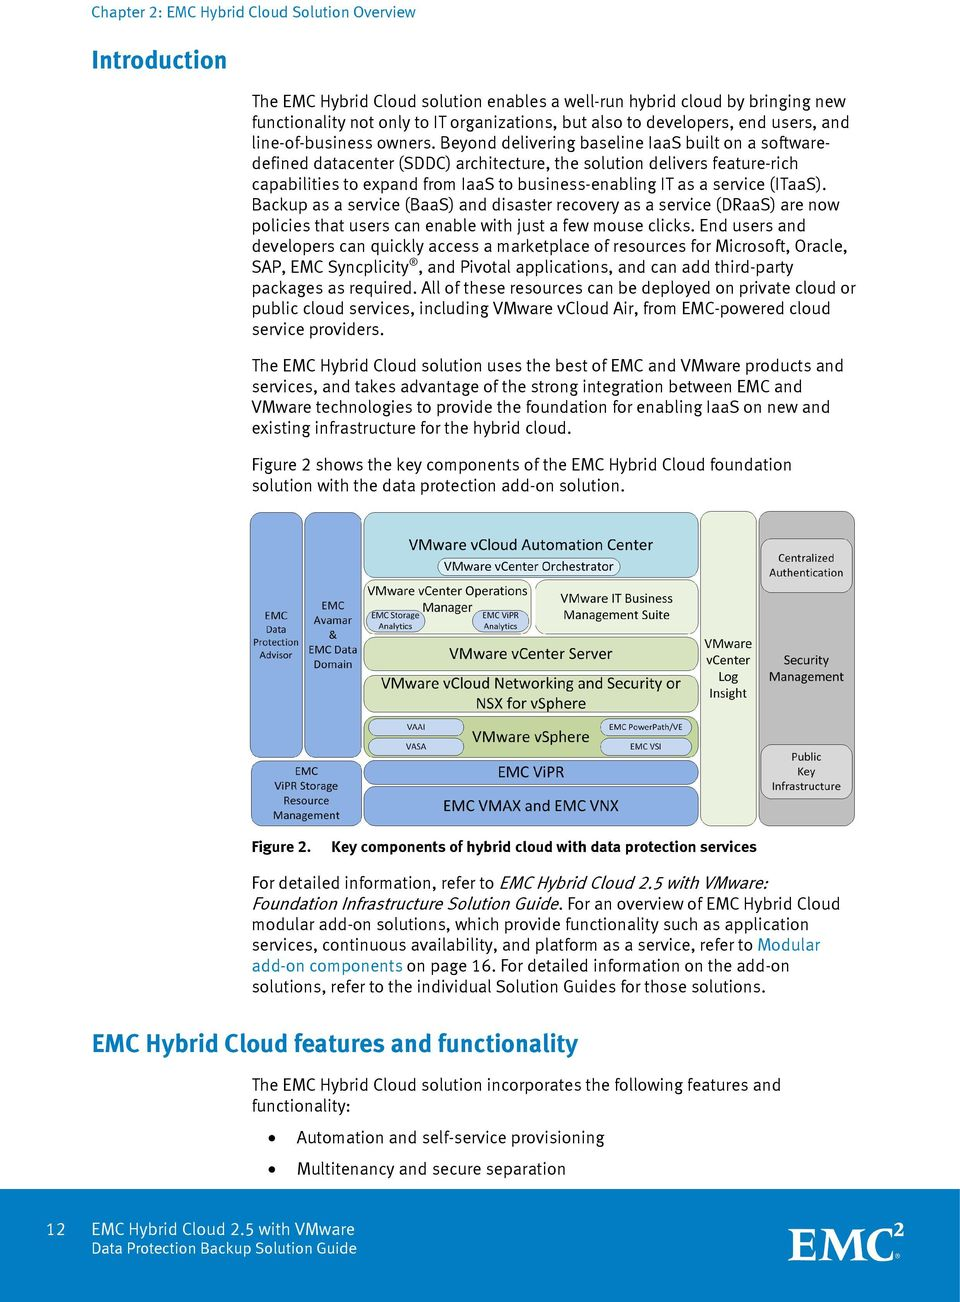 Beyond delivering baseline IaaS built on a softwaredefined datacenter (SDDC) architecture, the solution delivers feature-rich capabilities to expand from IaaS to business-enabling IT as a service